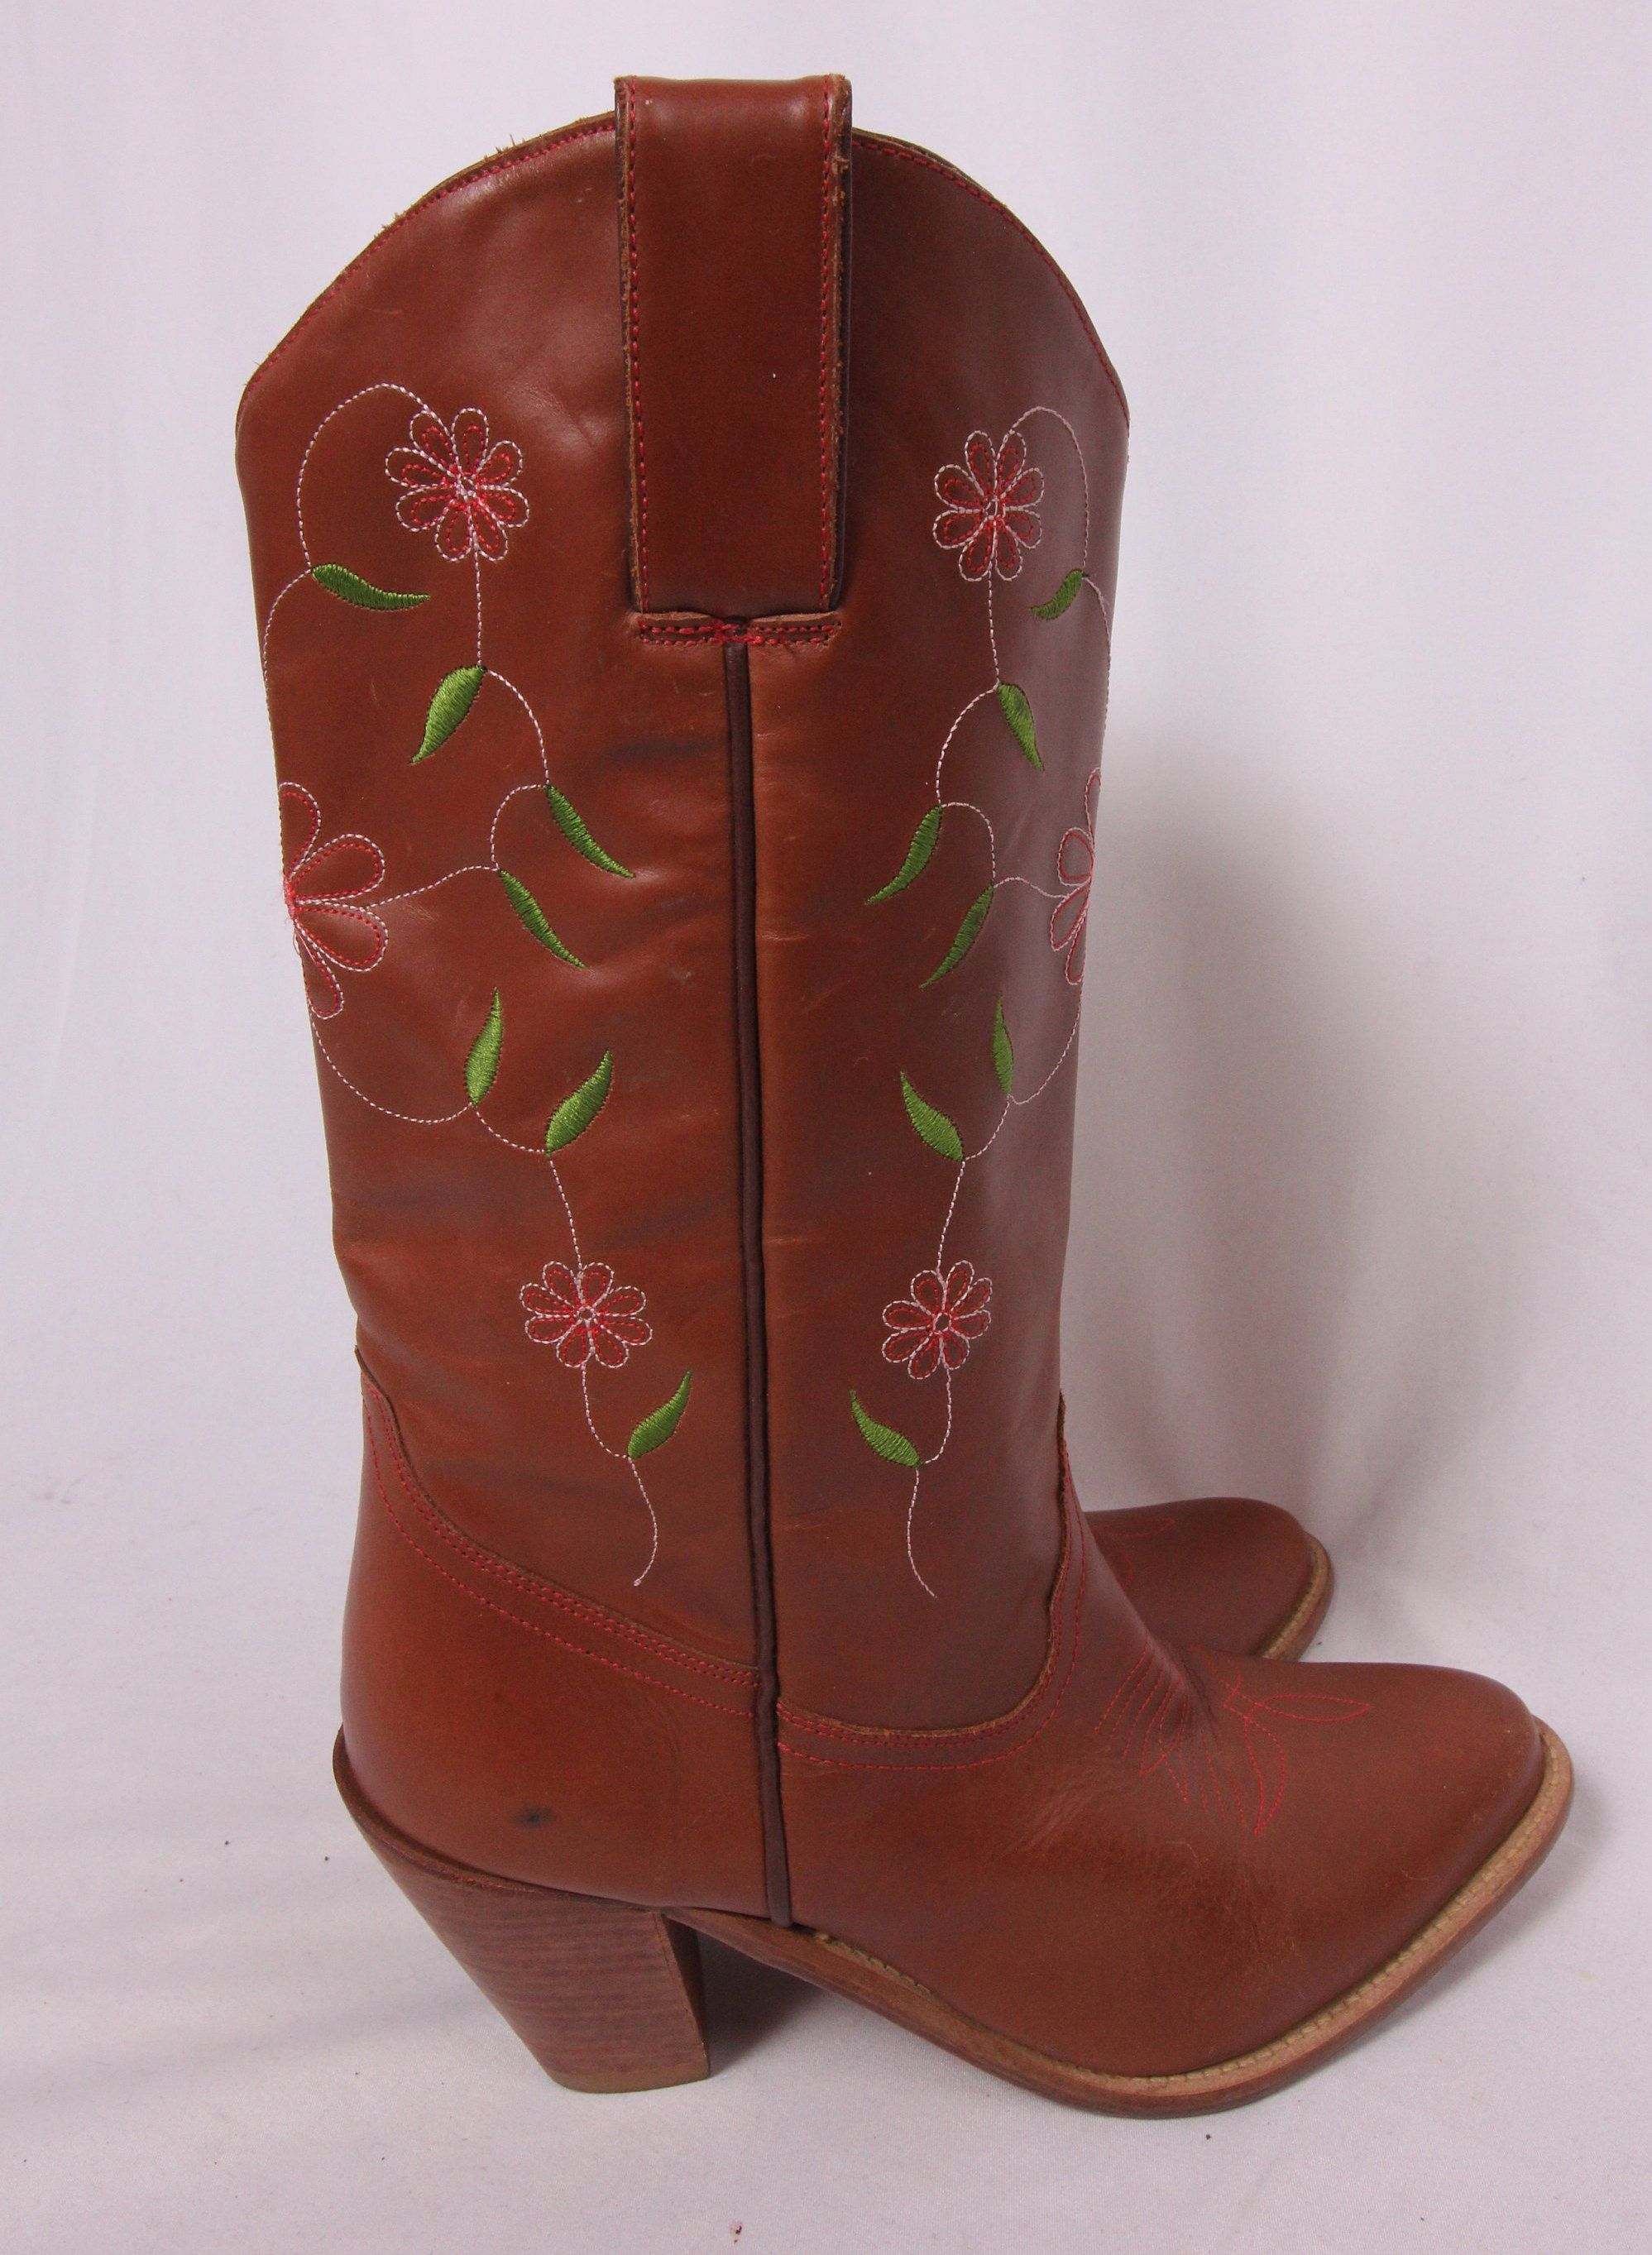 d5f82a98d2a Vintage 'Dingo' Brown Leather Cowboy Boots W/ Embroidered Flowers ...